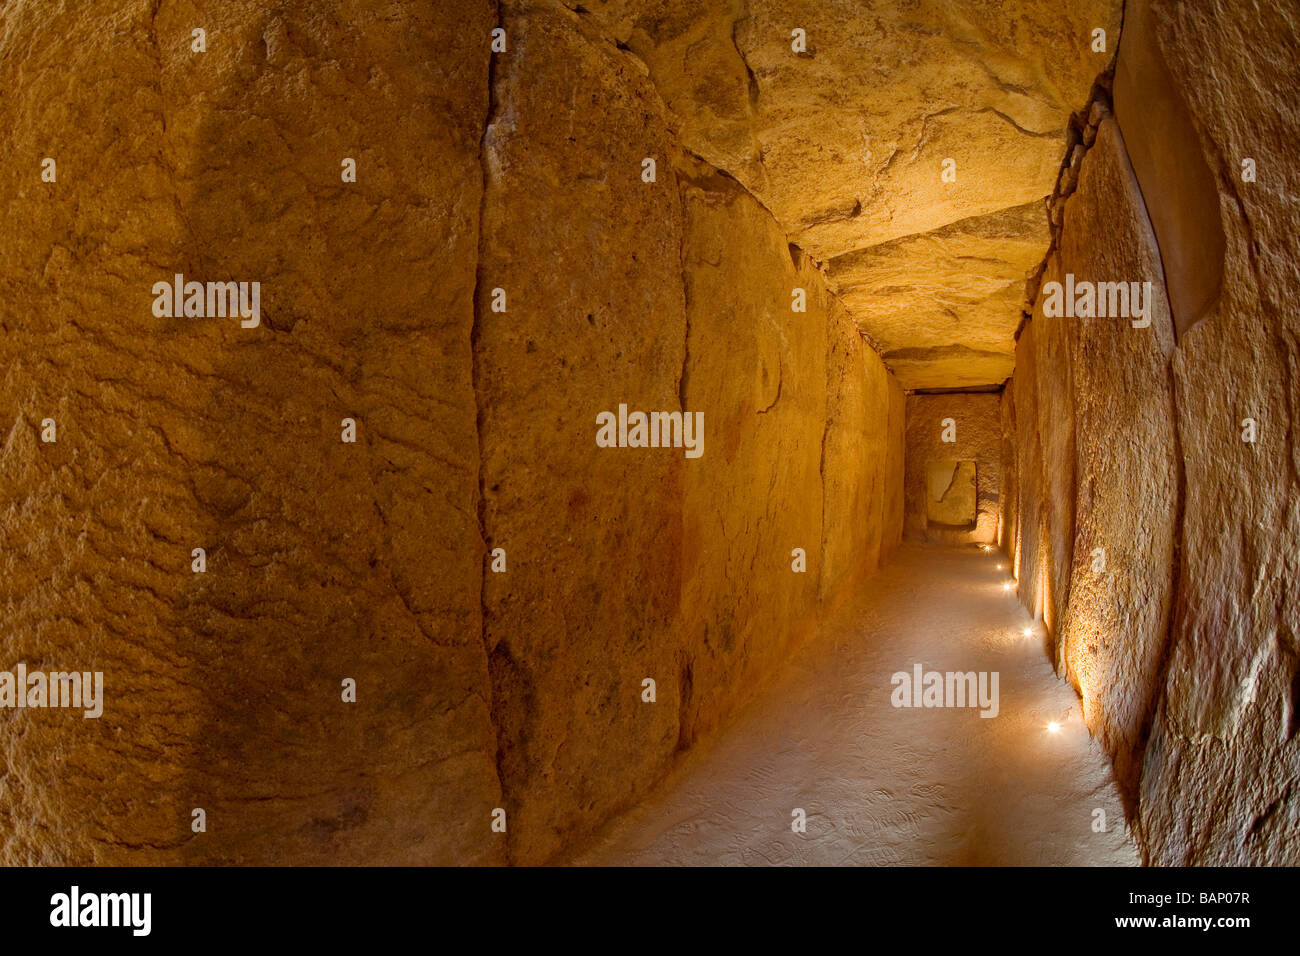 Megalithic Dolmens of Viera in Antequera Málaga Andalusia Spain - Stock Image